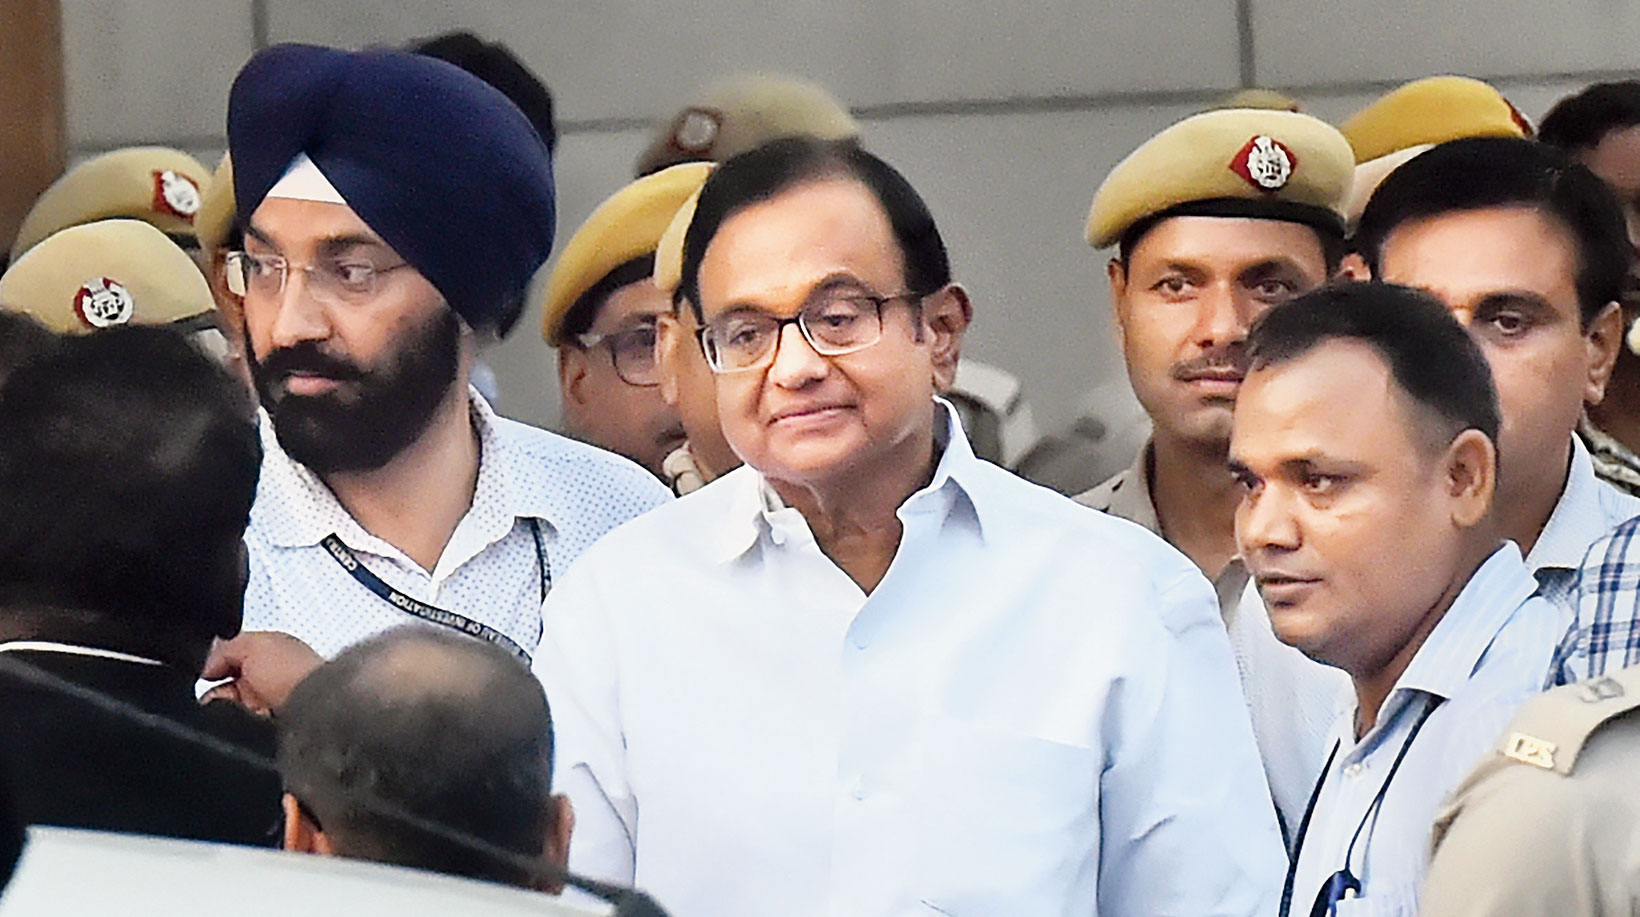 The court had earlier dismissed former Union minister P. Chidambaram's (in picture) plea for surrendering in the case after the ED said it would seek his custody when required